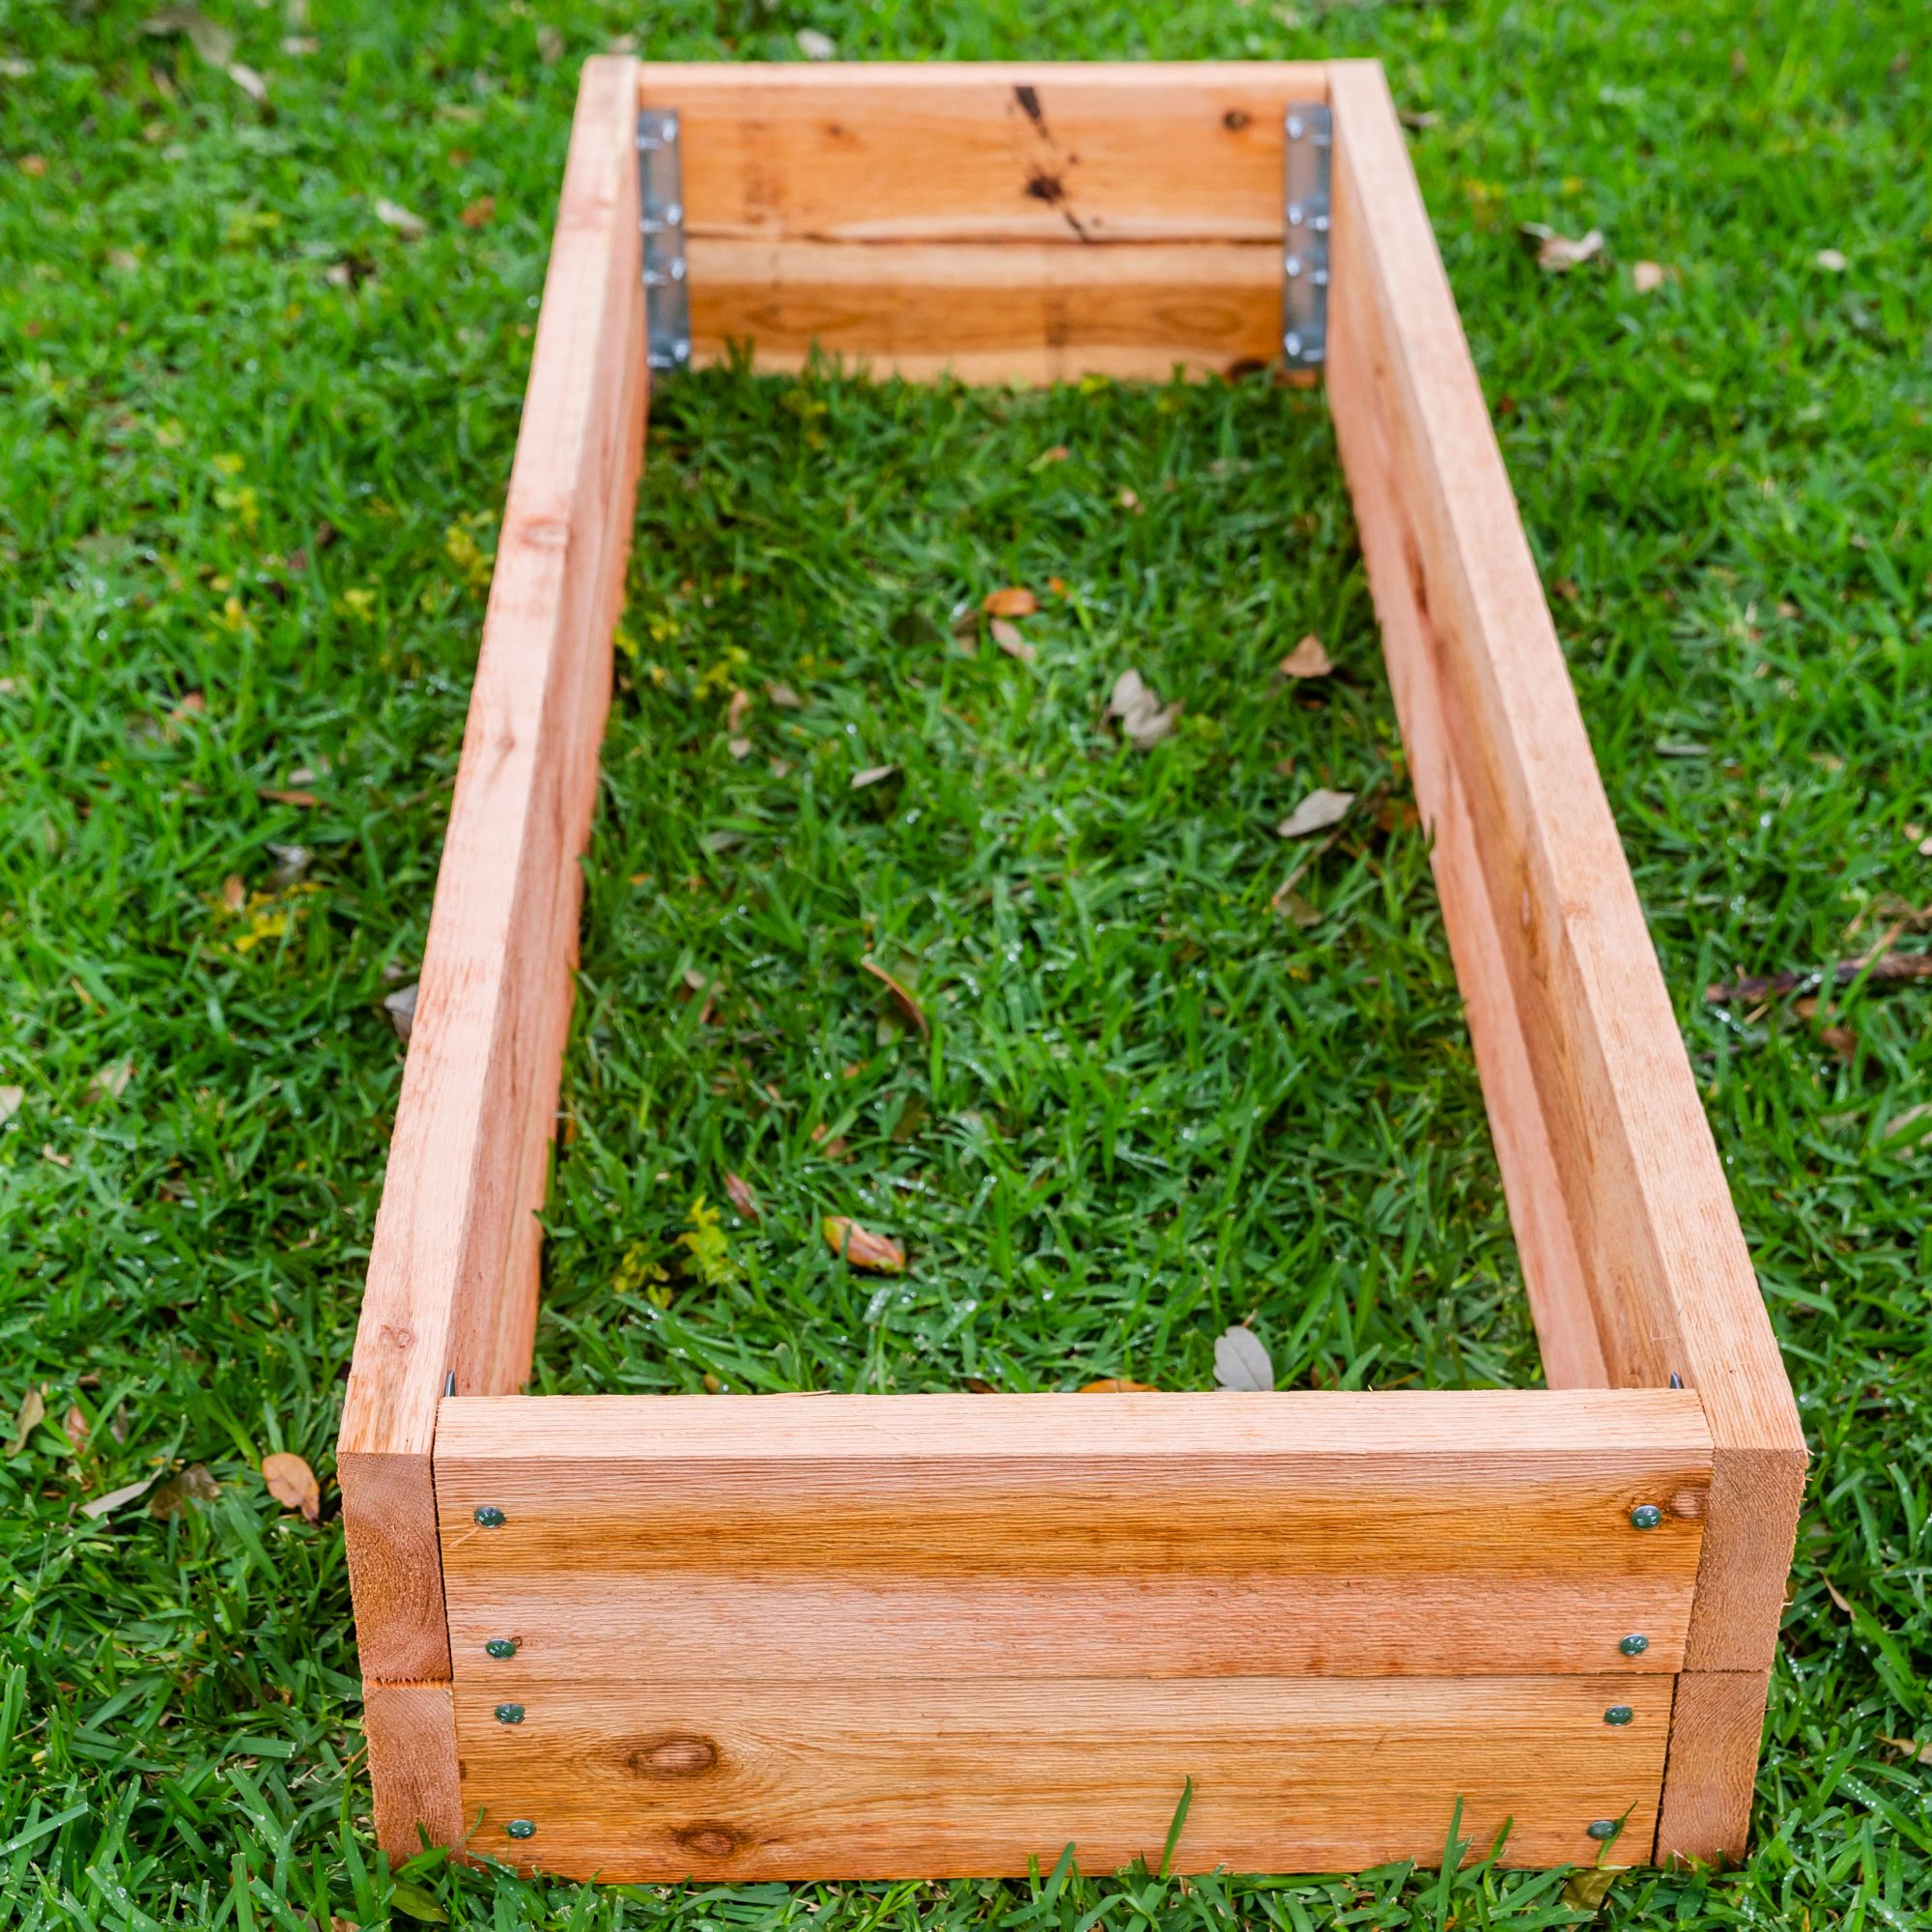 Nicole Burke Kitchen Garden Raised Bed Frame